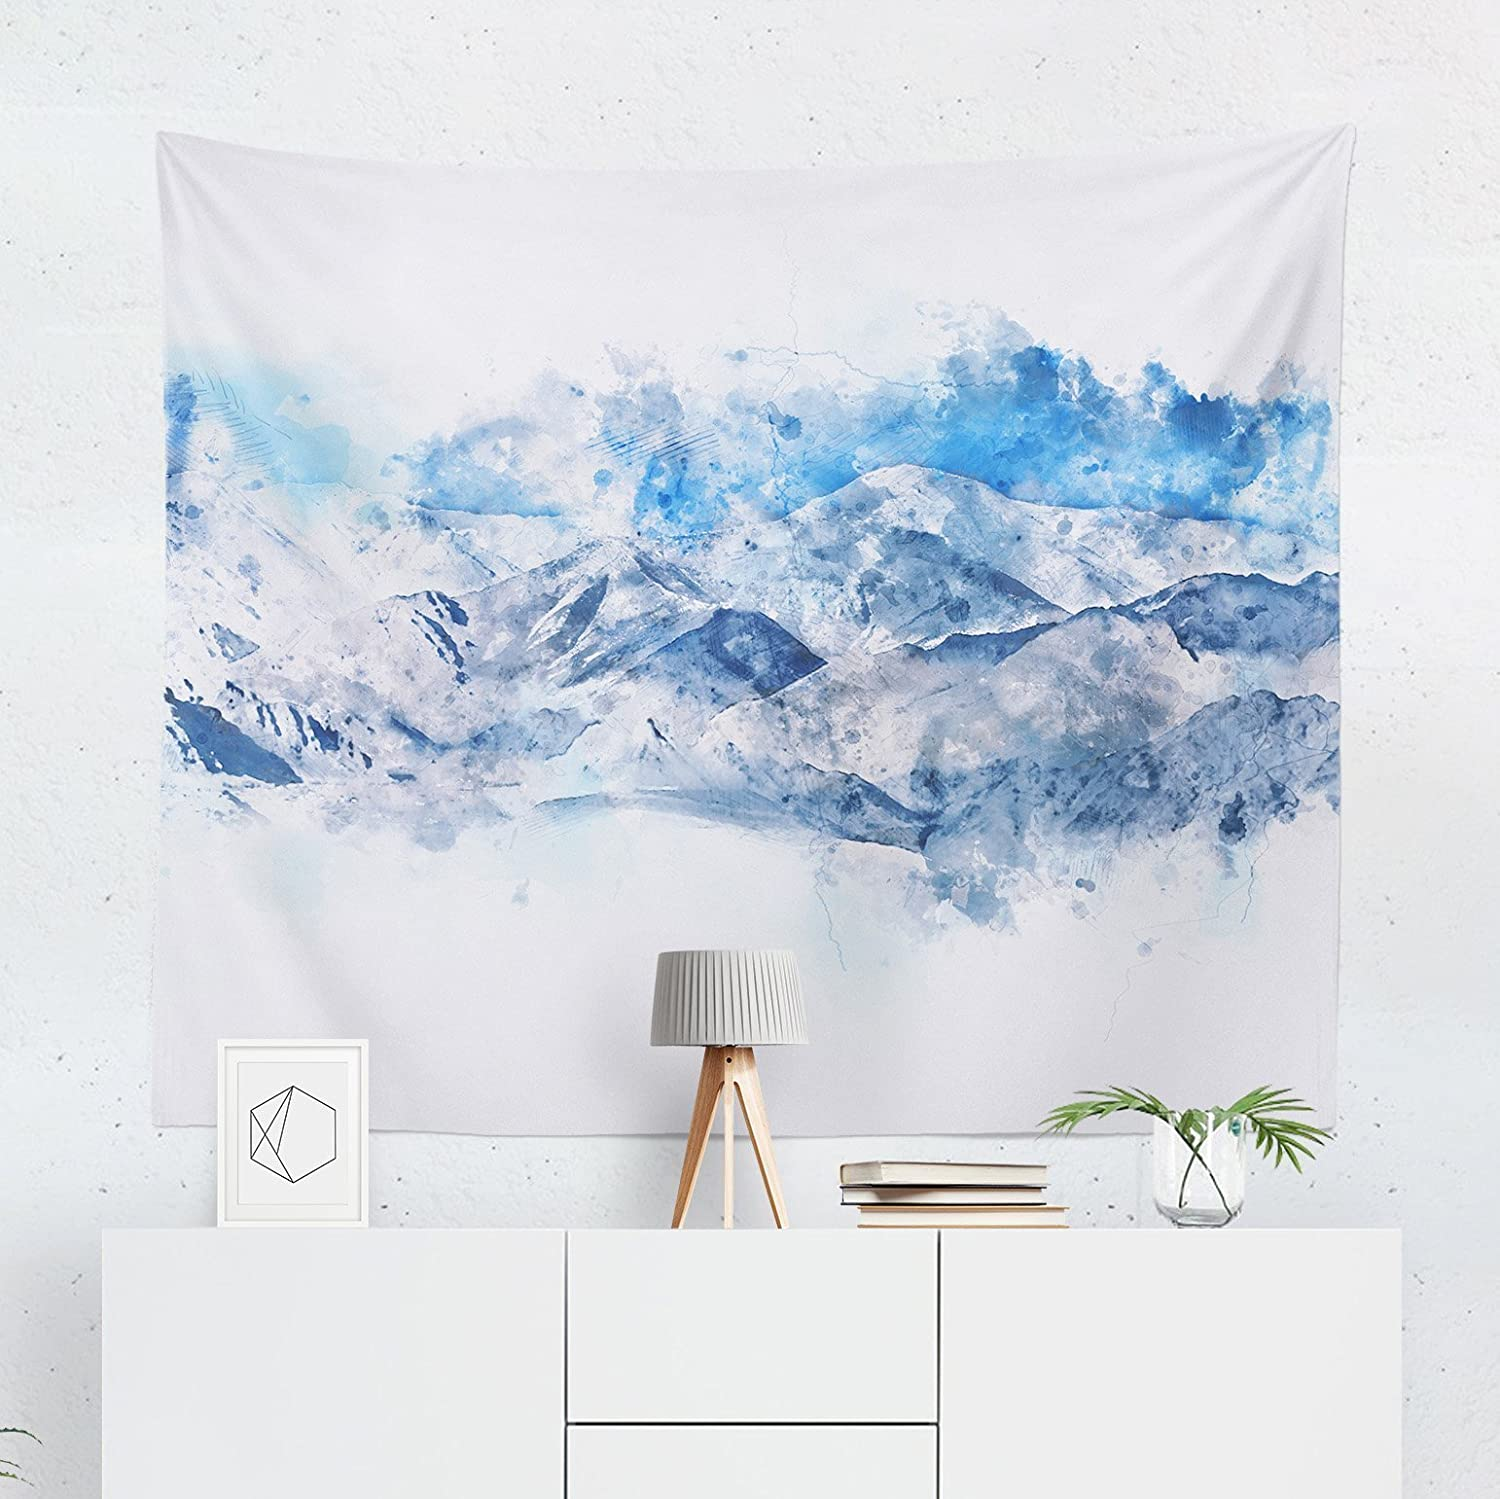 Watercolor Mountain Tapestry - Wilderness Blue Landscape Wall Tapestries Hanging Décor Bedroom Dorm College Living Room Home Art Print Decoration Decorative - Printed in the USA - Small Medium Large